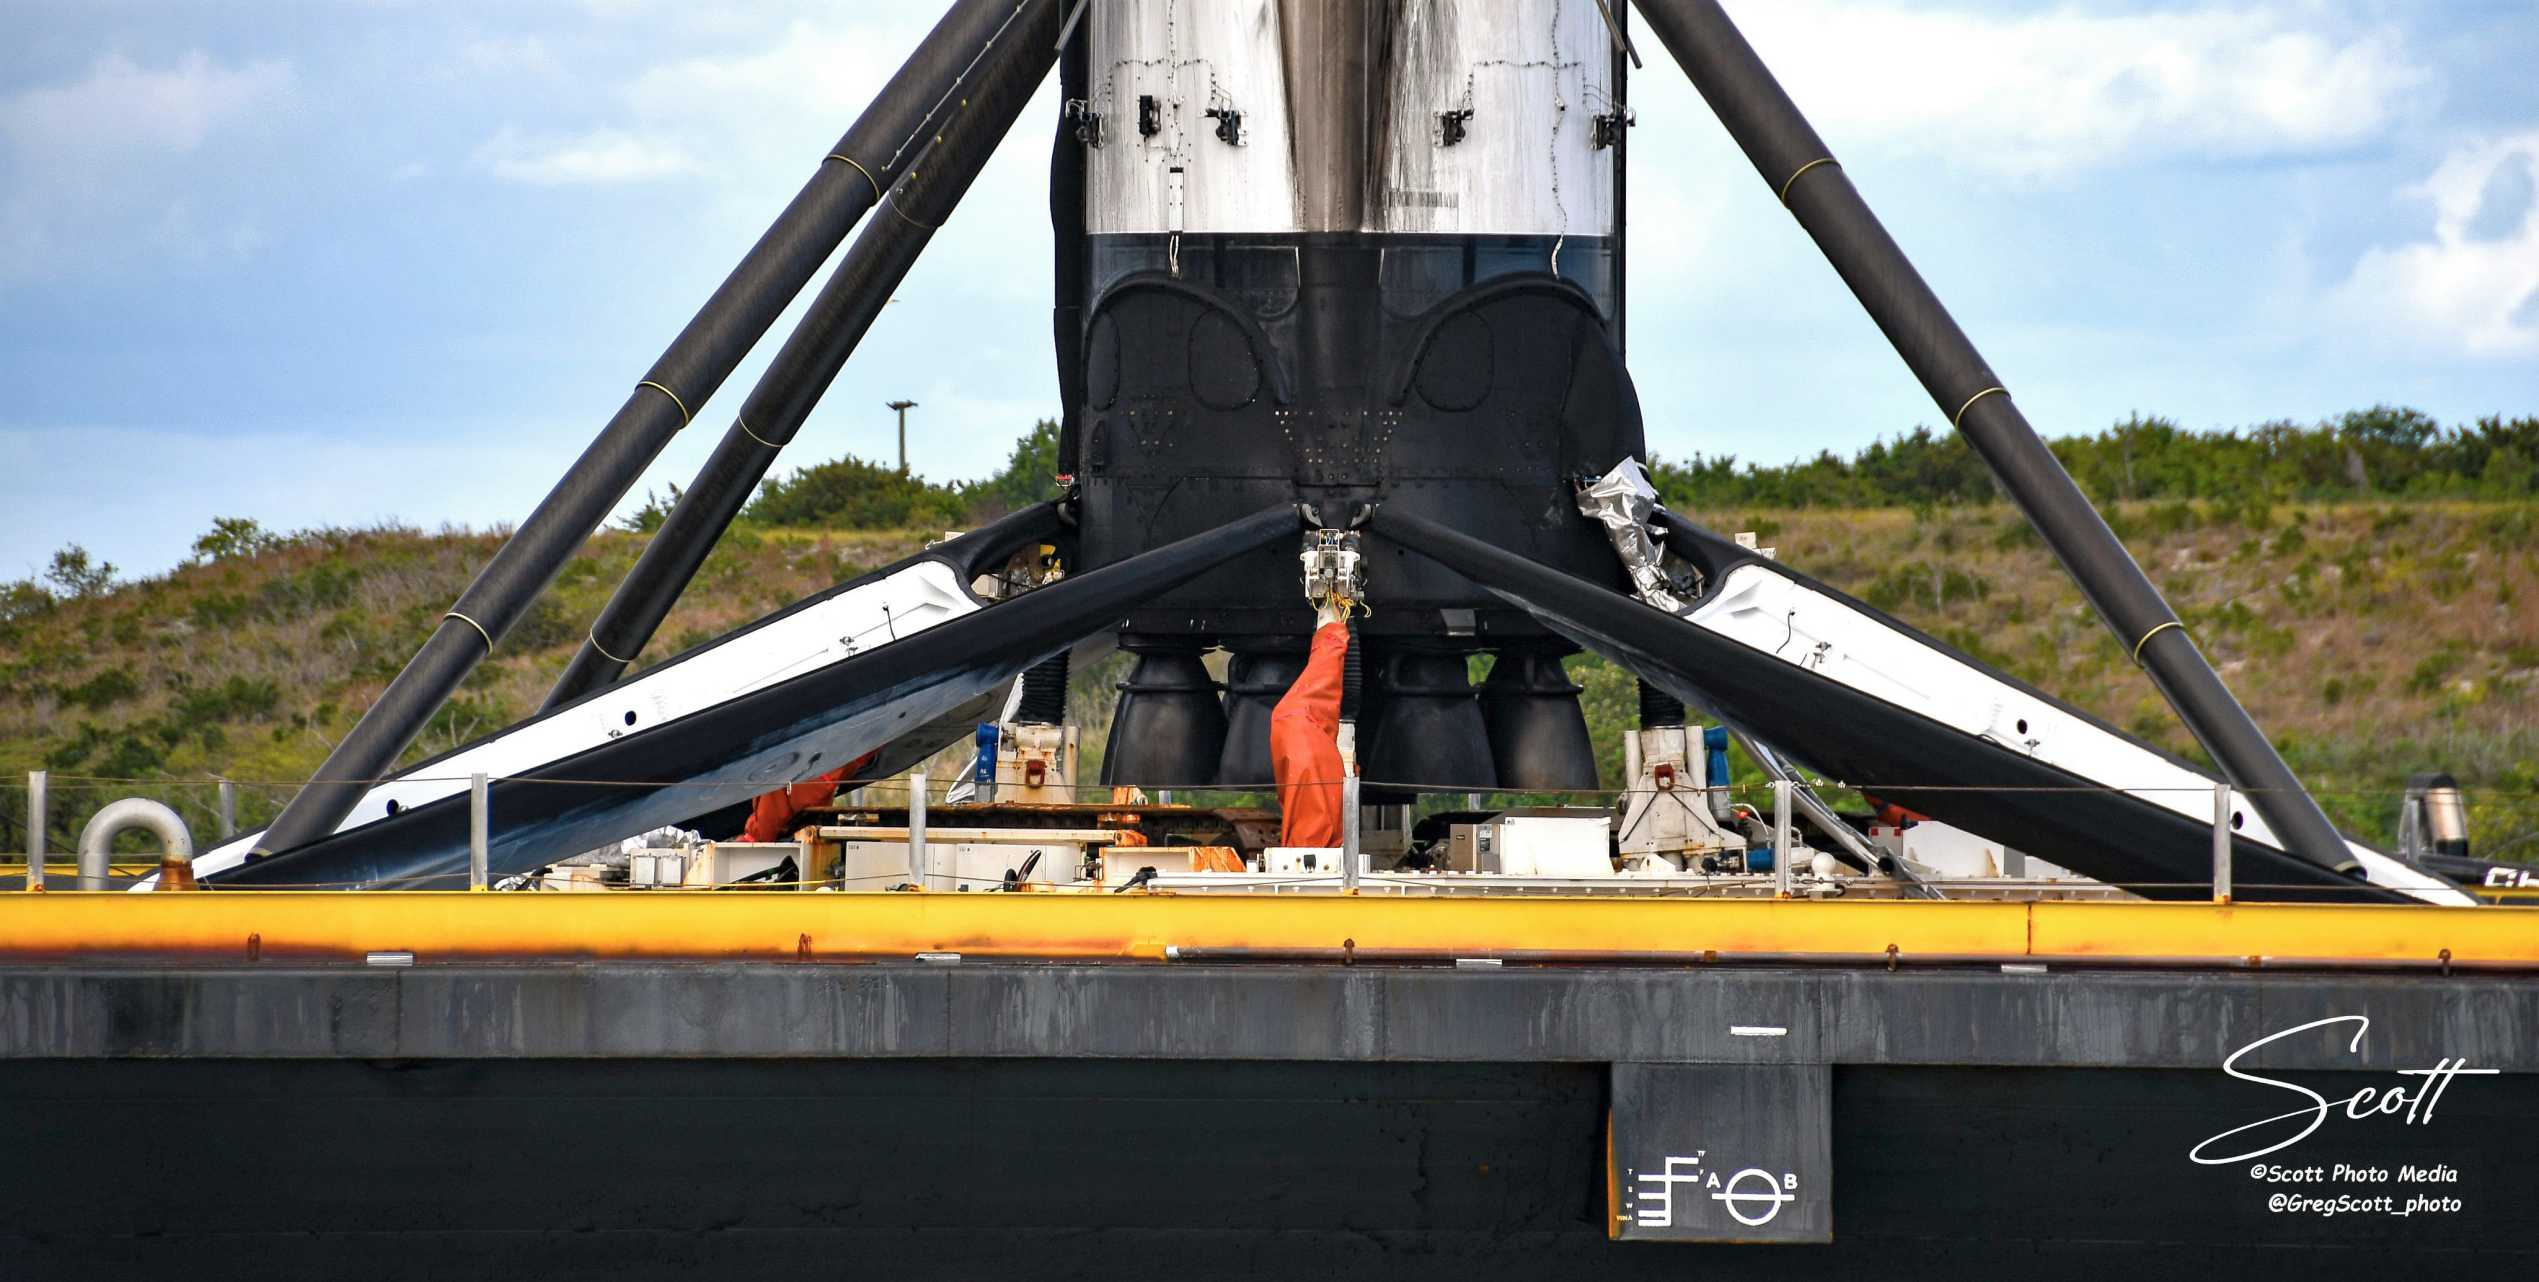 Falcon 9 B1056 Kacific-1 OCISLY recovery 121919 (Greg Scott) 1 crop (c)